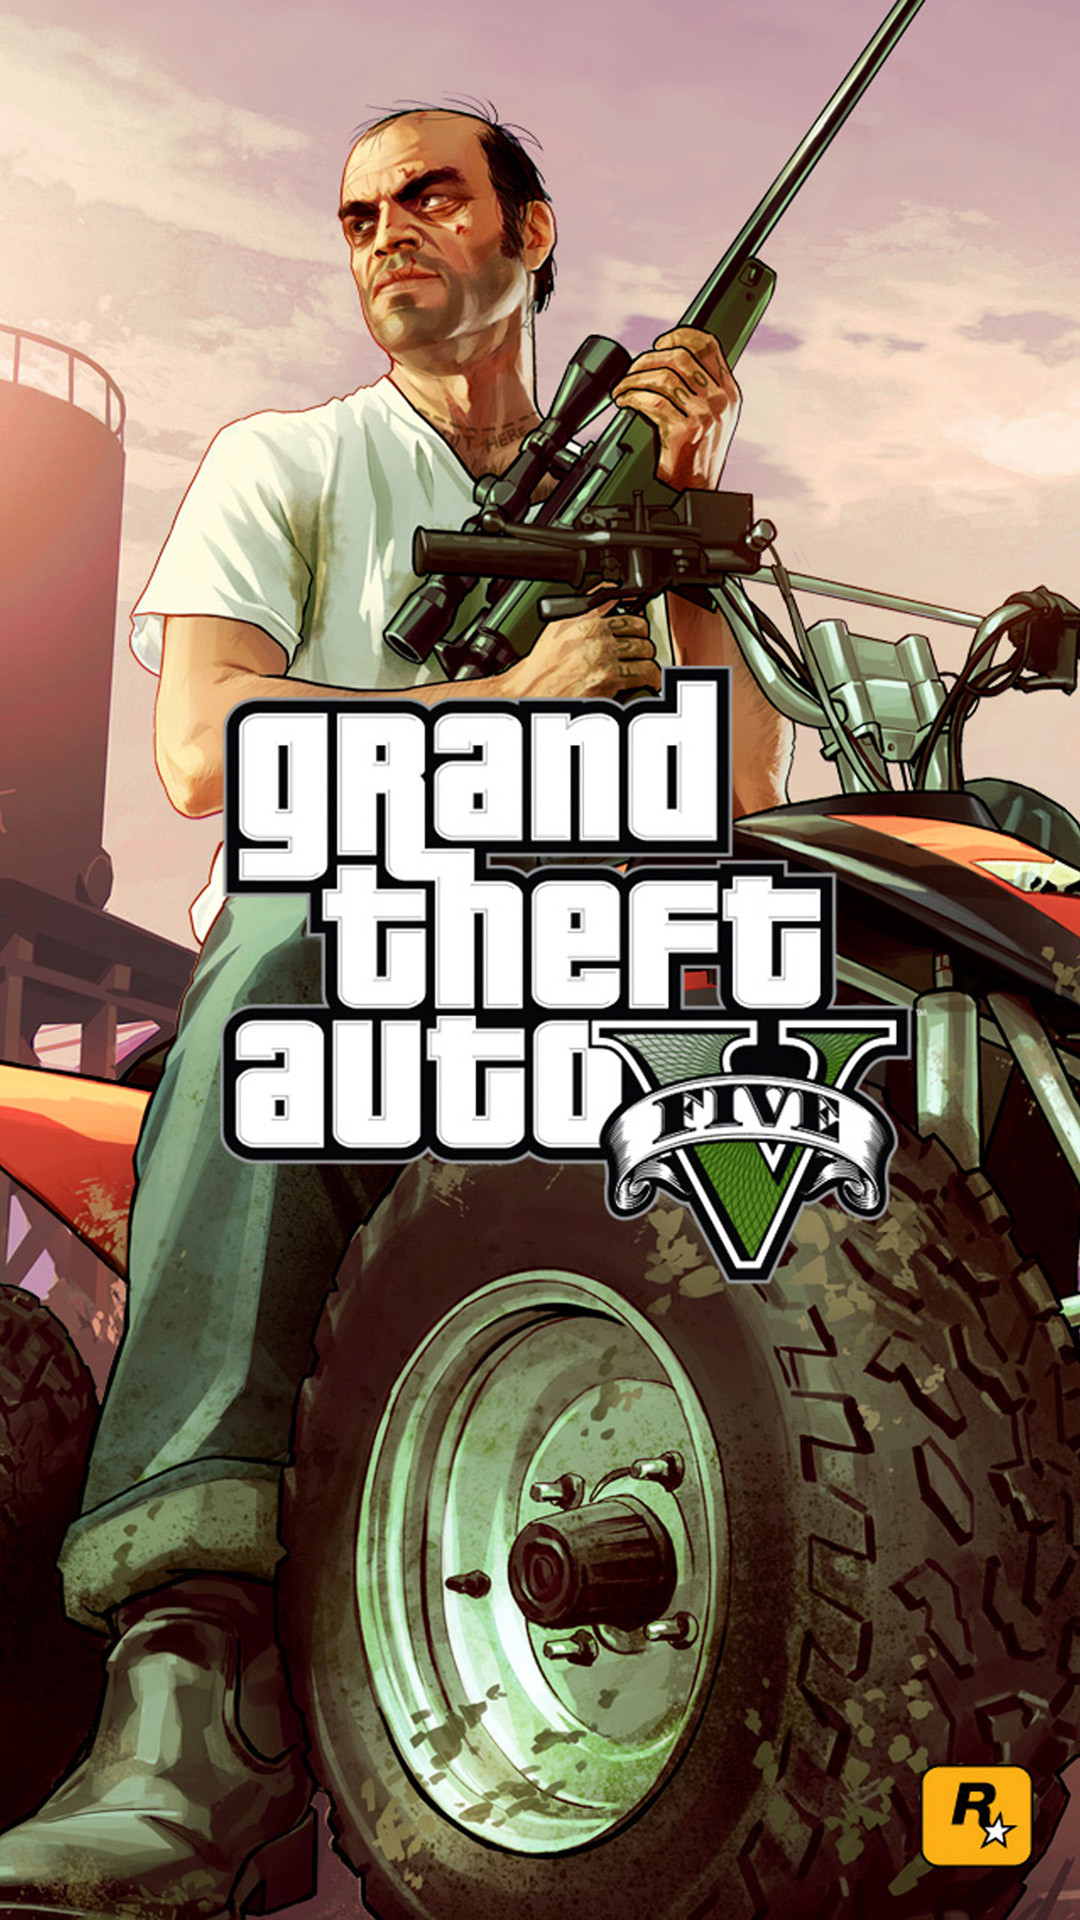 Gta 5 iphone wallpaper 75 images - Gta v wallpaper ...